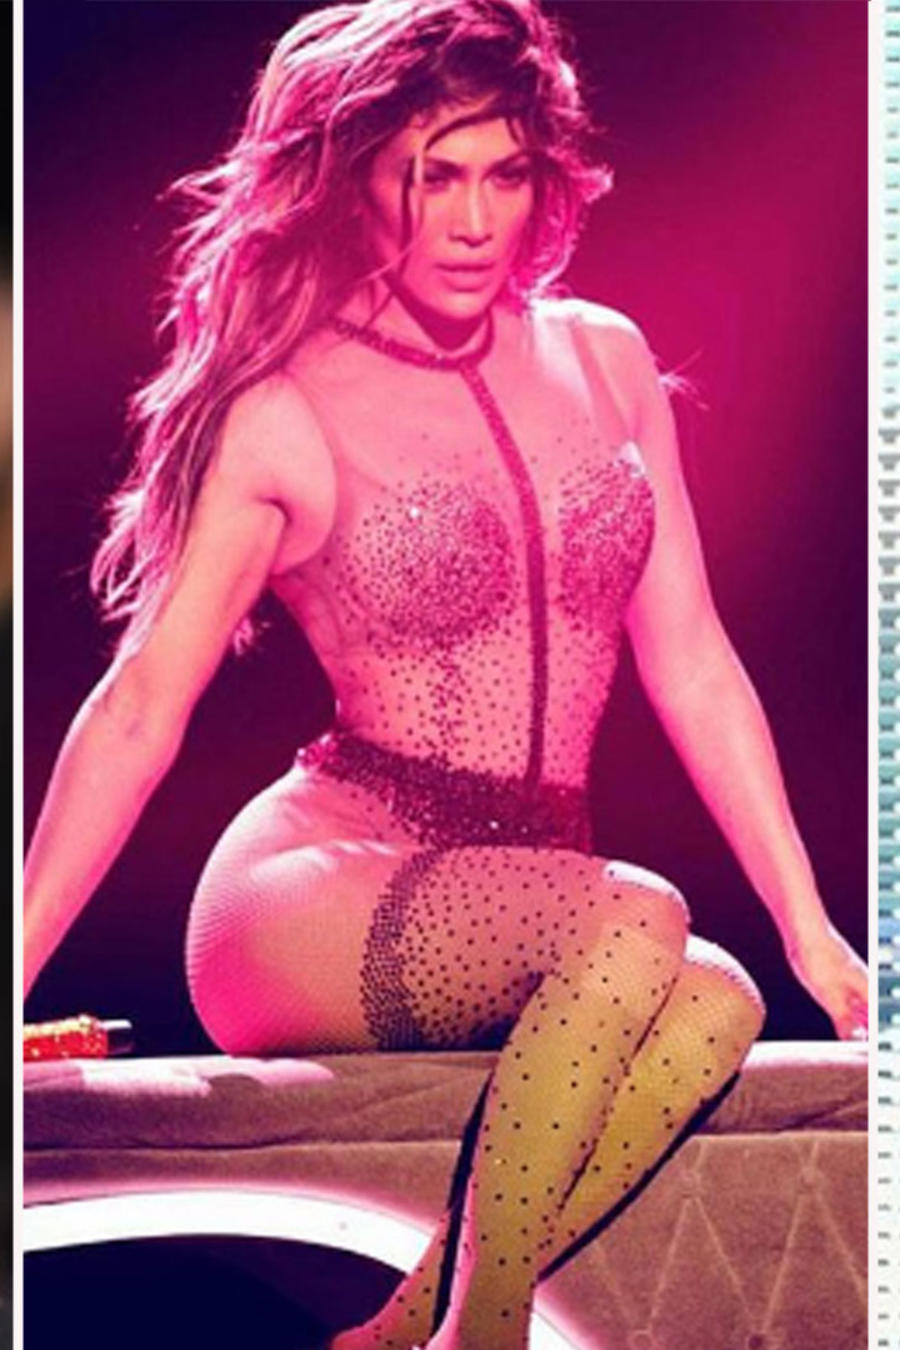 JLo sexis outfits